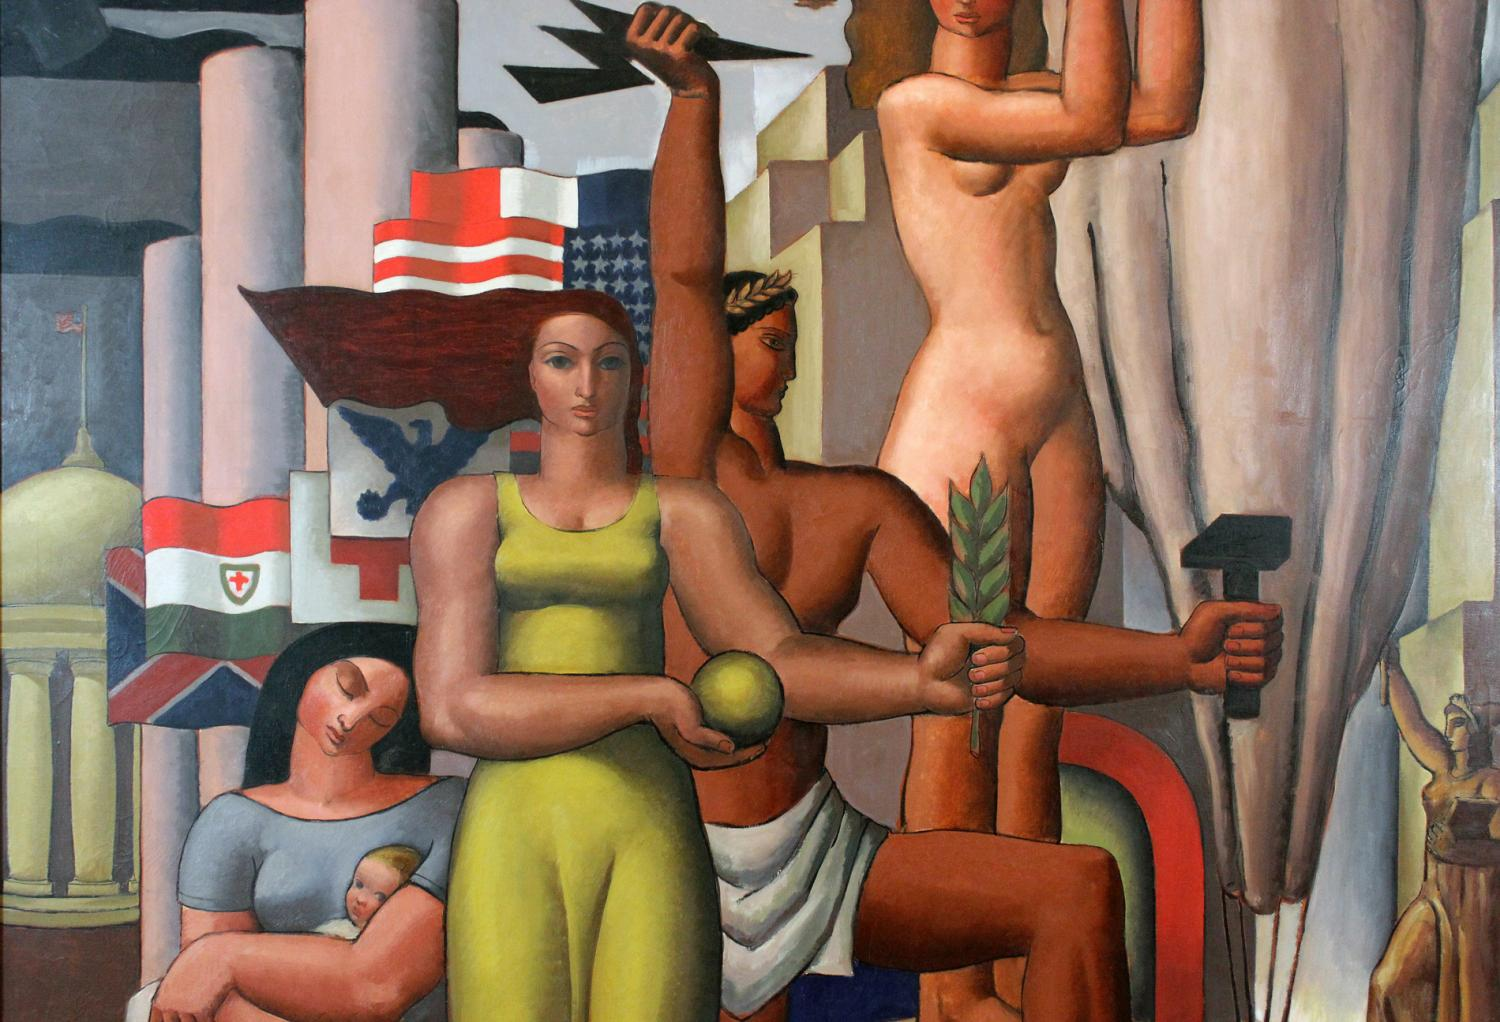 Edwin Boyd Johnson. Mural Painting (detail), 1934. Oil on canvas. Allocated by the U.S. Government, commissioned through the New Deal art projects, 1934-2-22. © Edwin Boyd Johnson